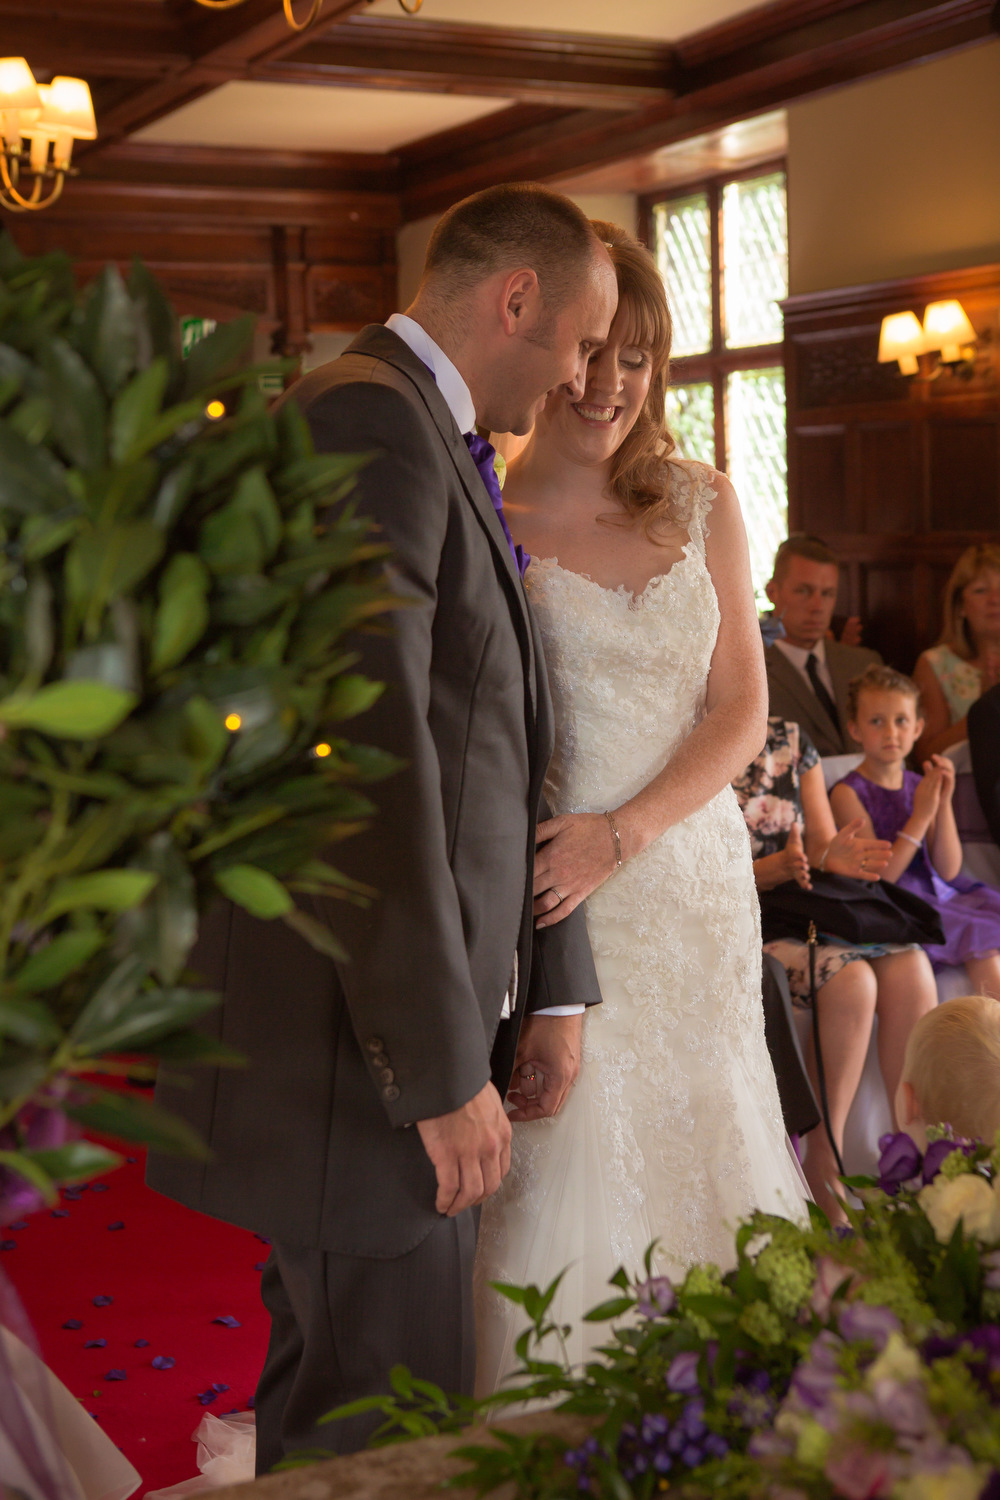 charnwood_weddings_Rothley_Court_Kelly_Rich169.JPG